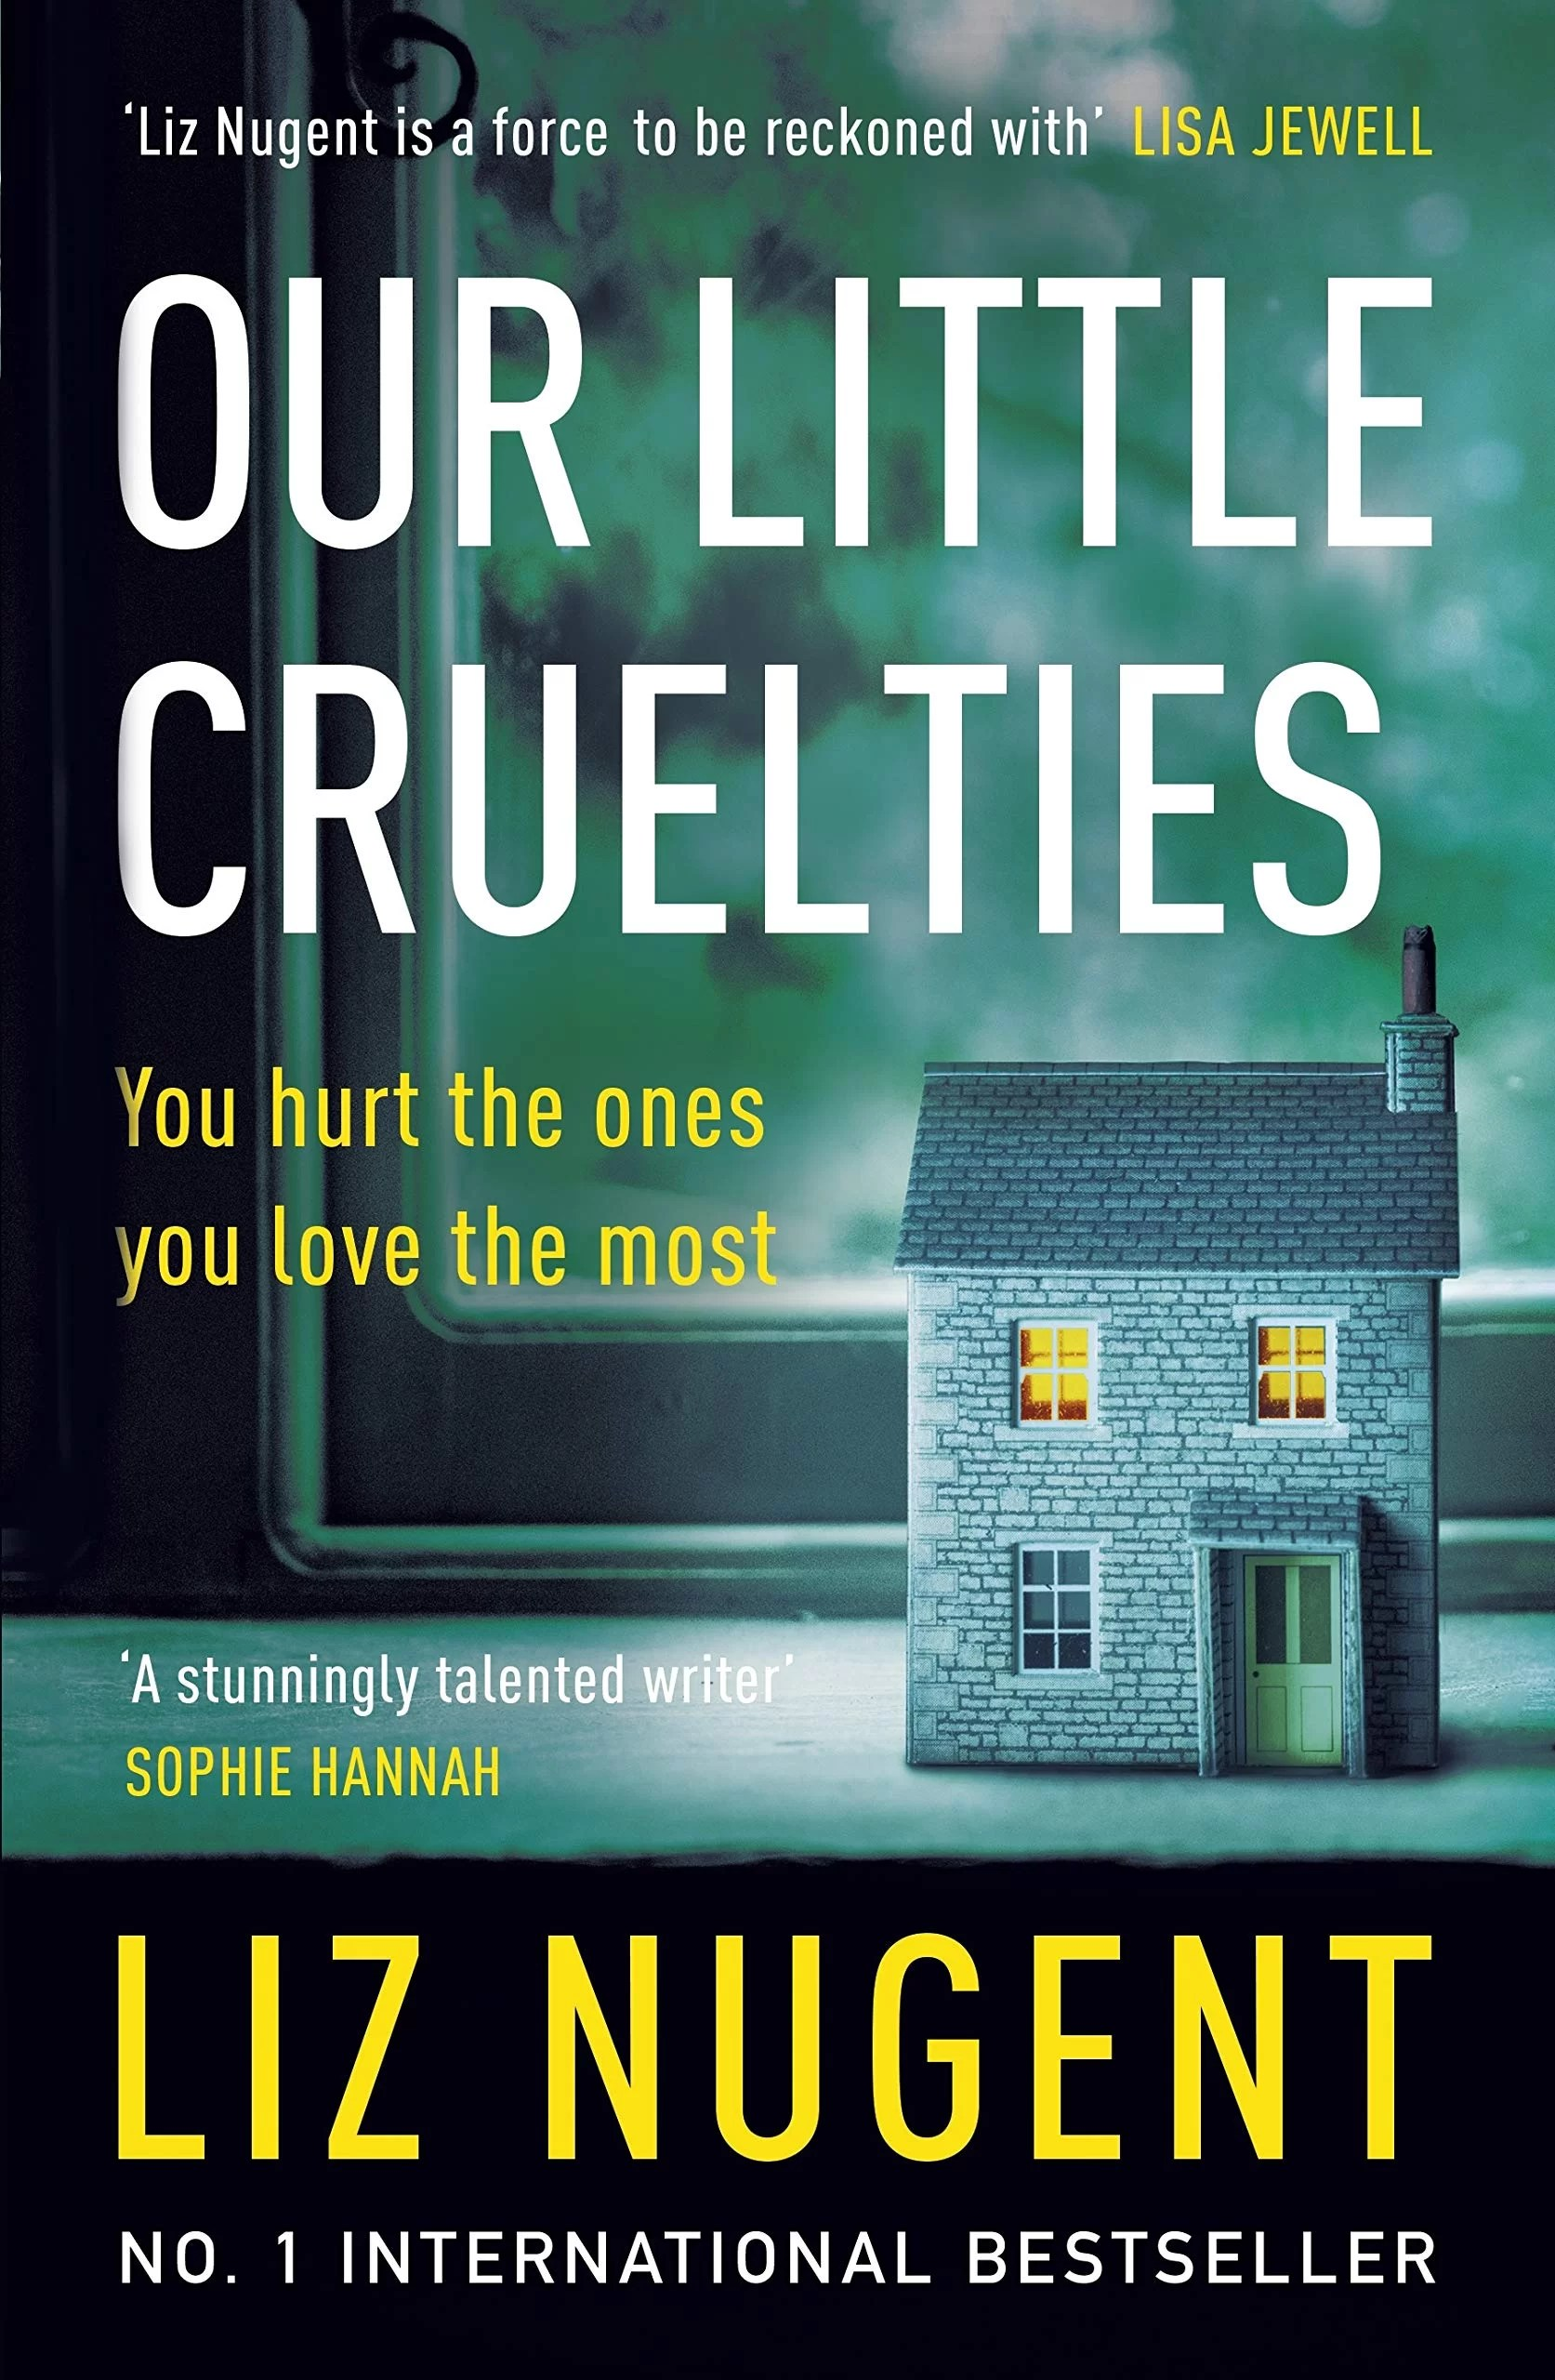 Review: Our Little Cruelties by Liz Nugent